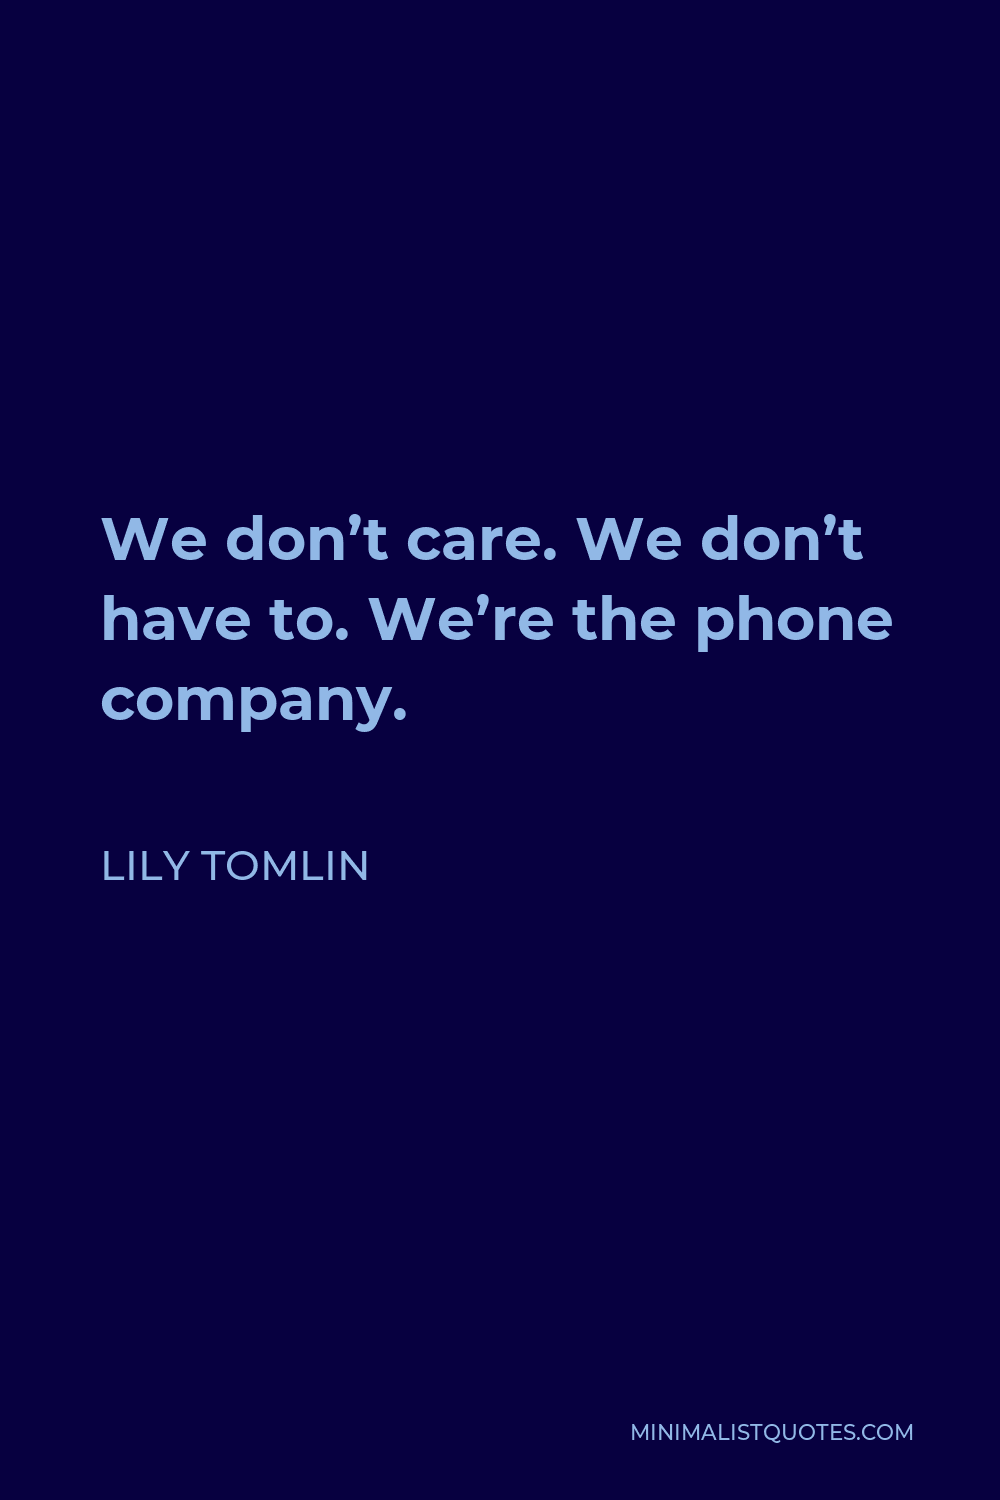 Lily Tomlin Quote - We don't care. We don't have to. We're the phone company.